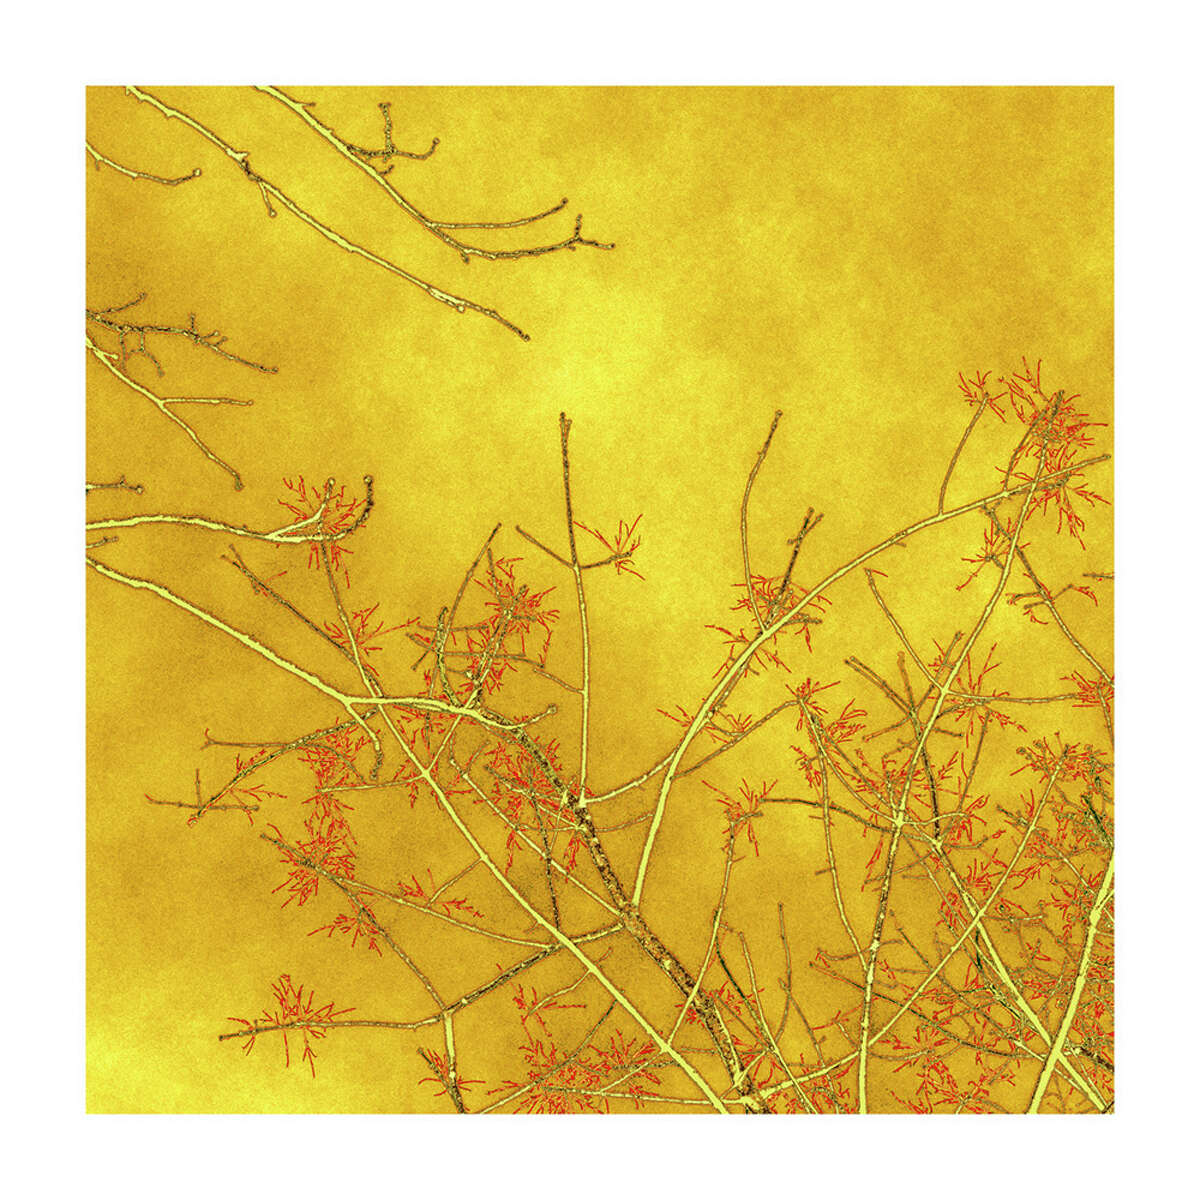 """Nancy Woodward's """"Branch Sprite,"""" varnished archival pigment print on tissue, is on display at the Darien Nature Center's """"EarthWorks"""" exhibit."""